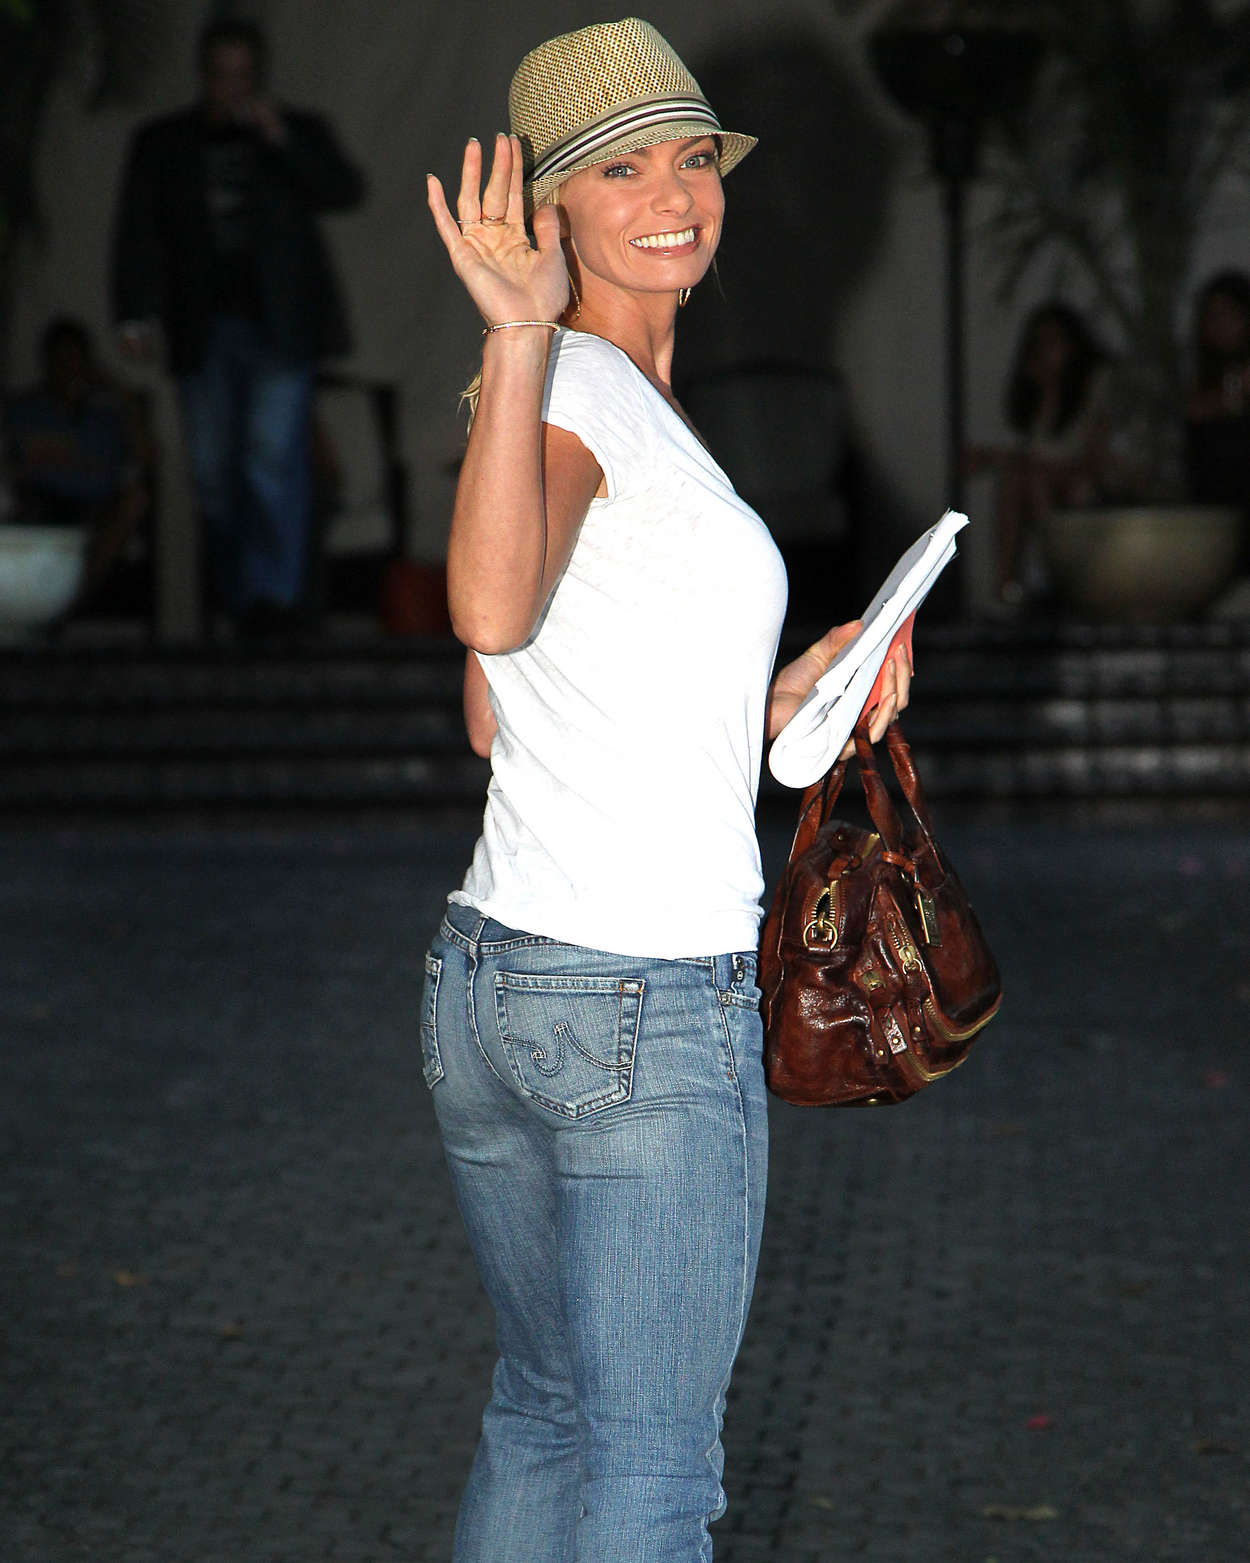 Jaime Pressly in jeans at the Chateau Marmont in West Hollywood